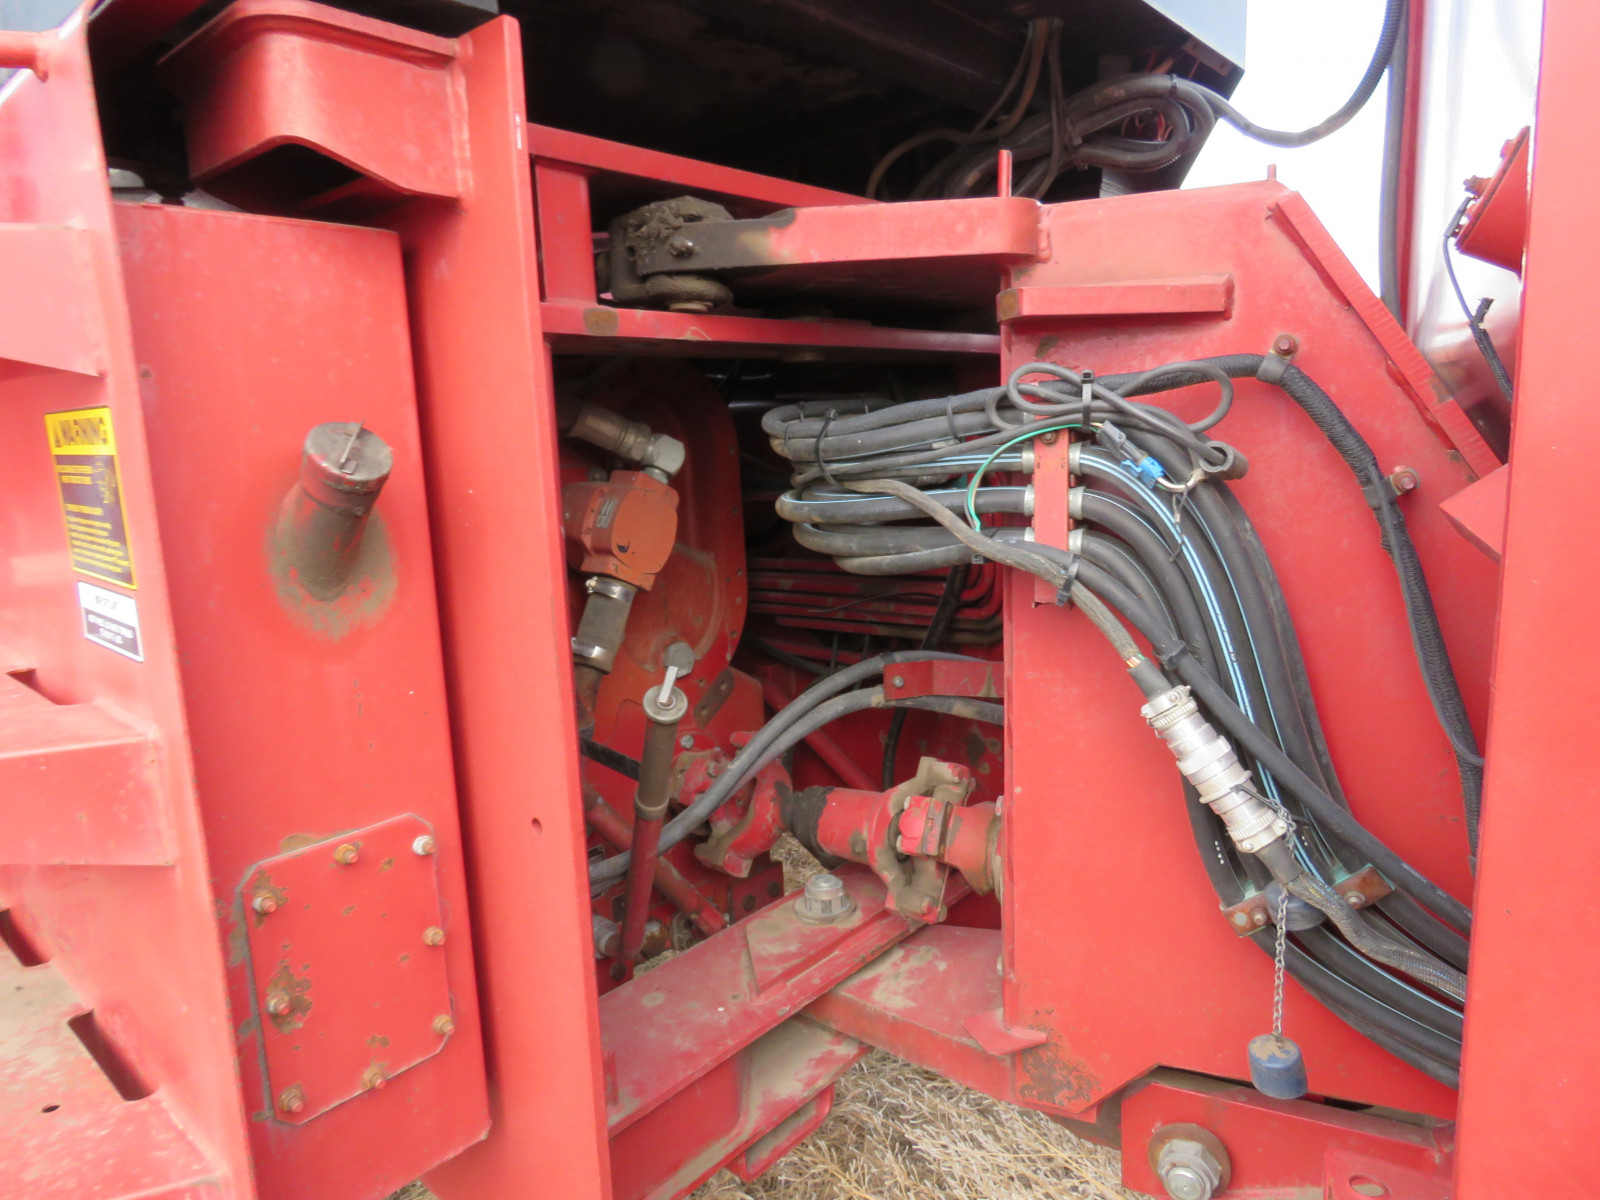 CASE-IH 1991 9270 4WD Tractor JCB0026904 - Image 5